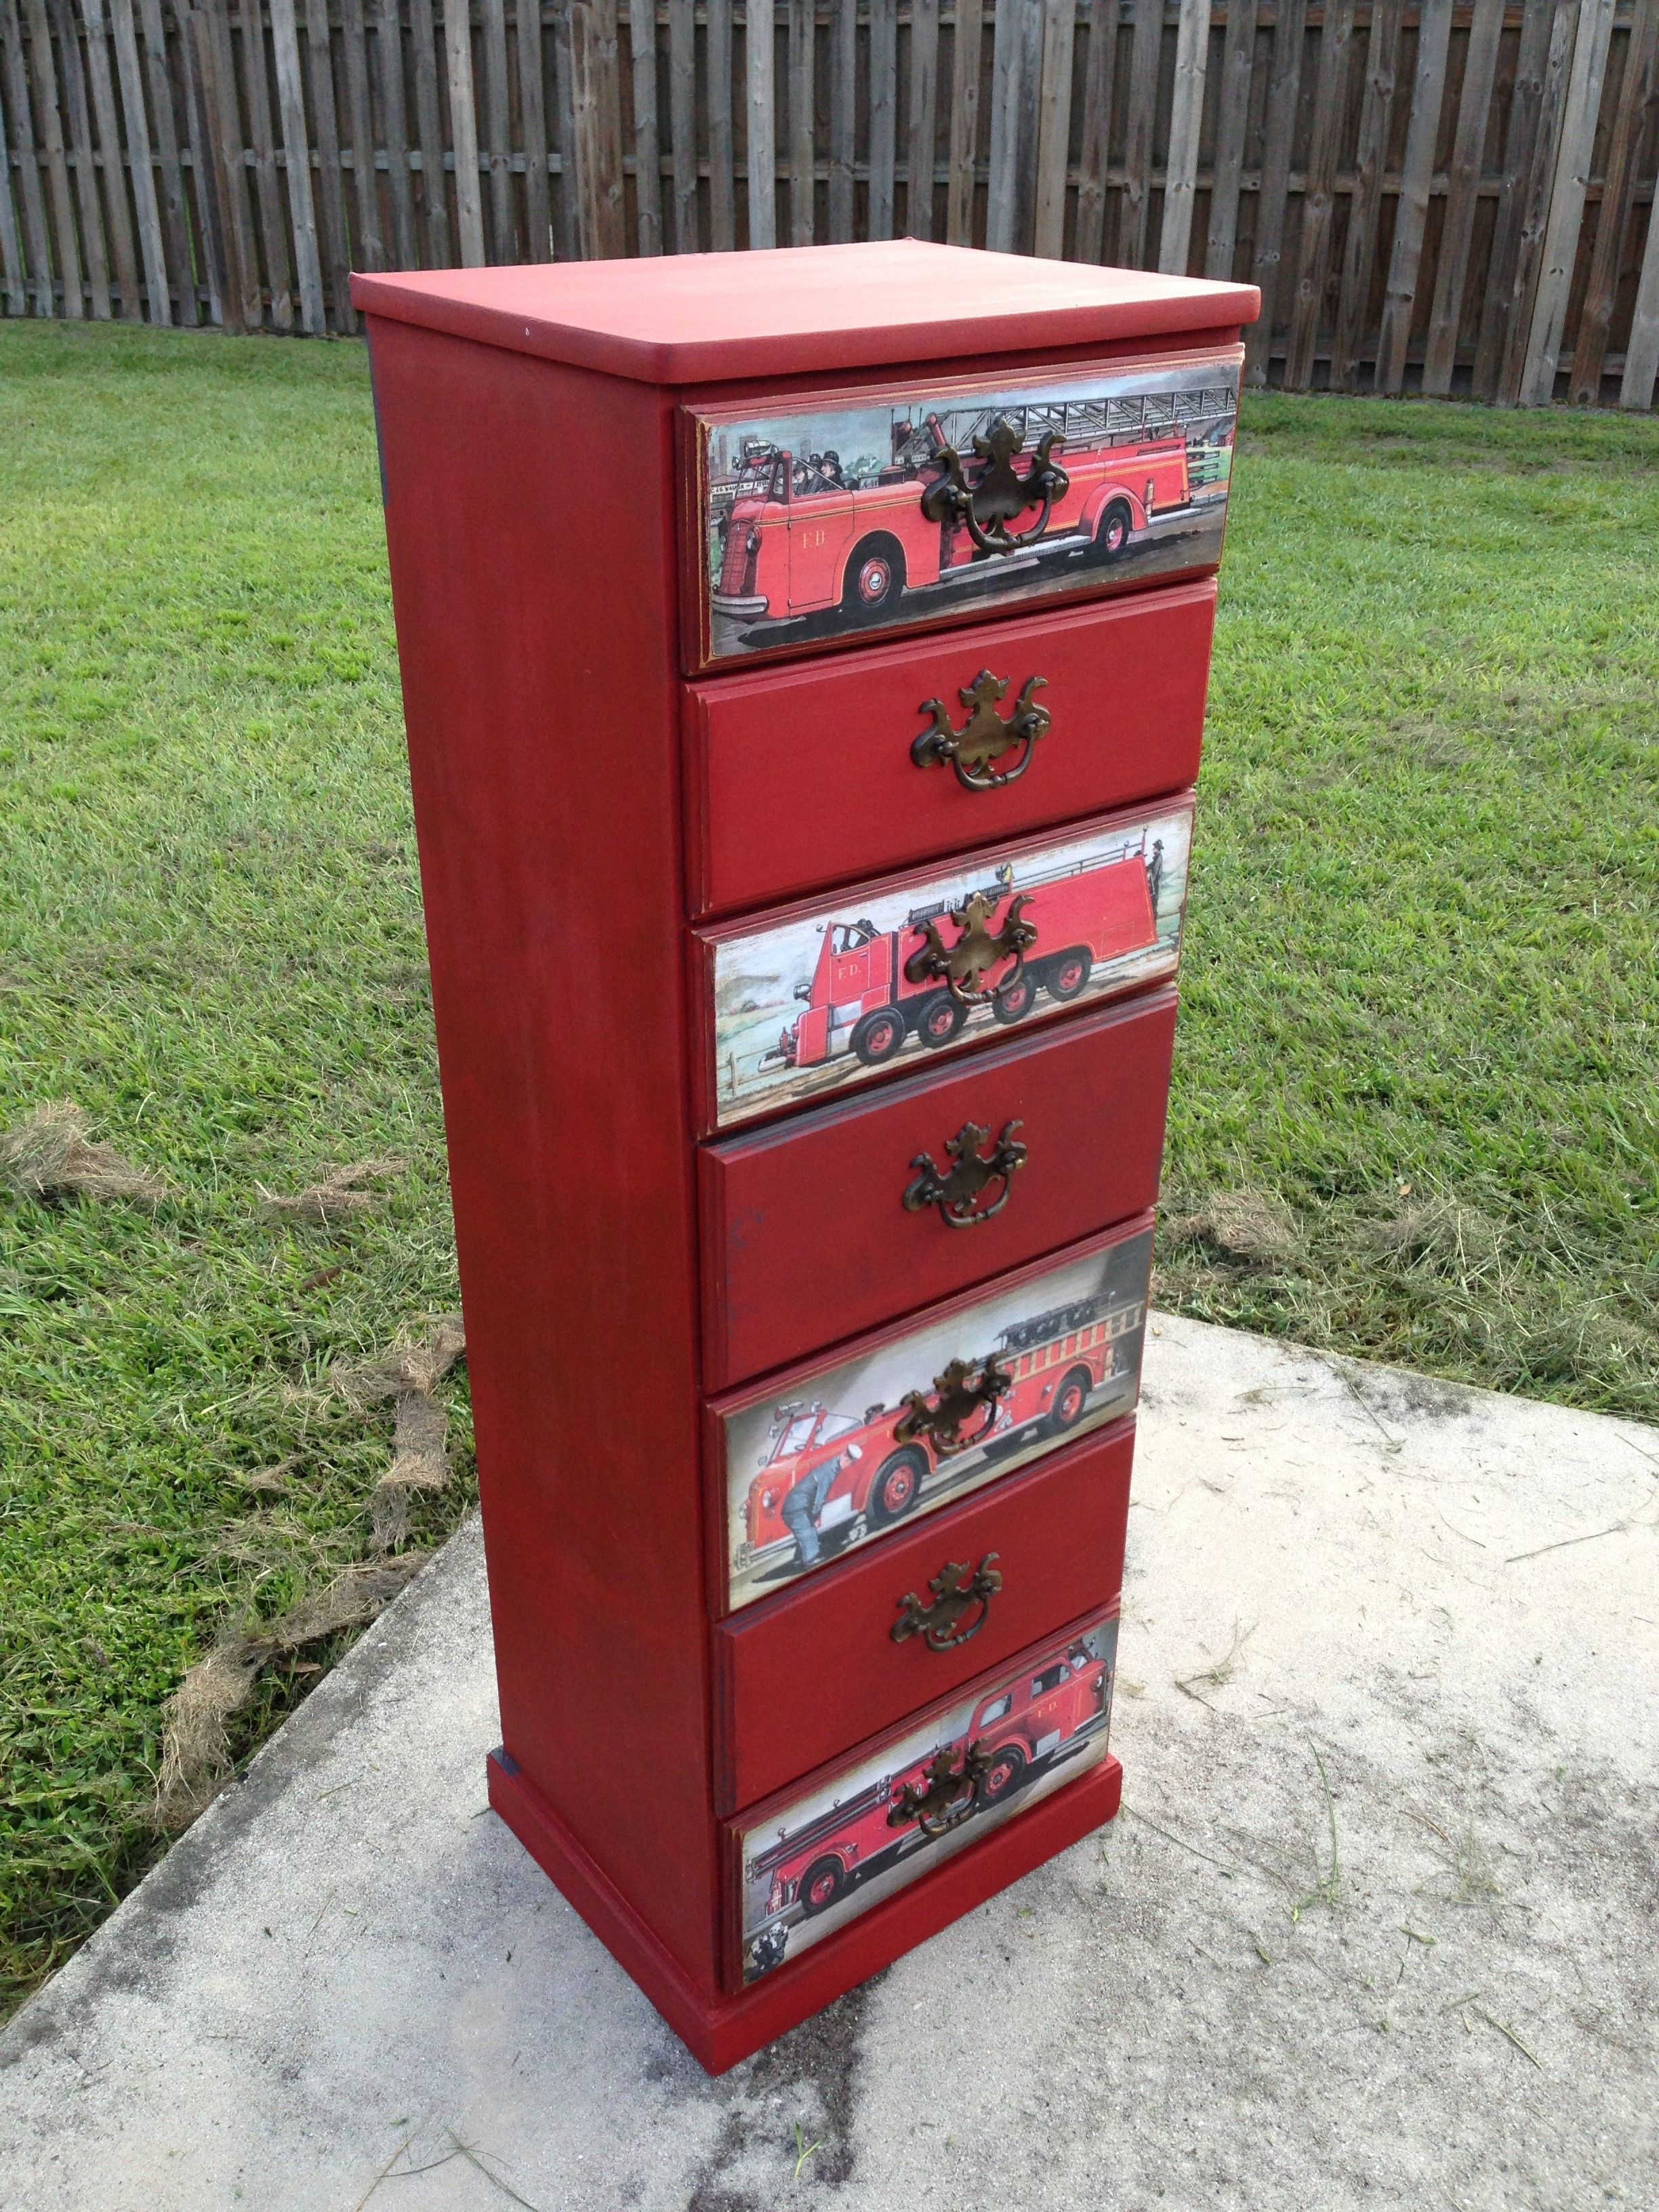 Fire Truck Dresser.  Emperor's Silk over Graphite.  Fire Truck pictures from vintage children's book decoupage on drawer fronts.  See more on my Facebook page, Dresser Up